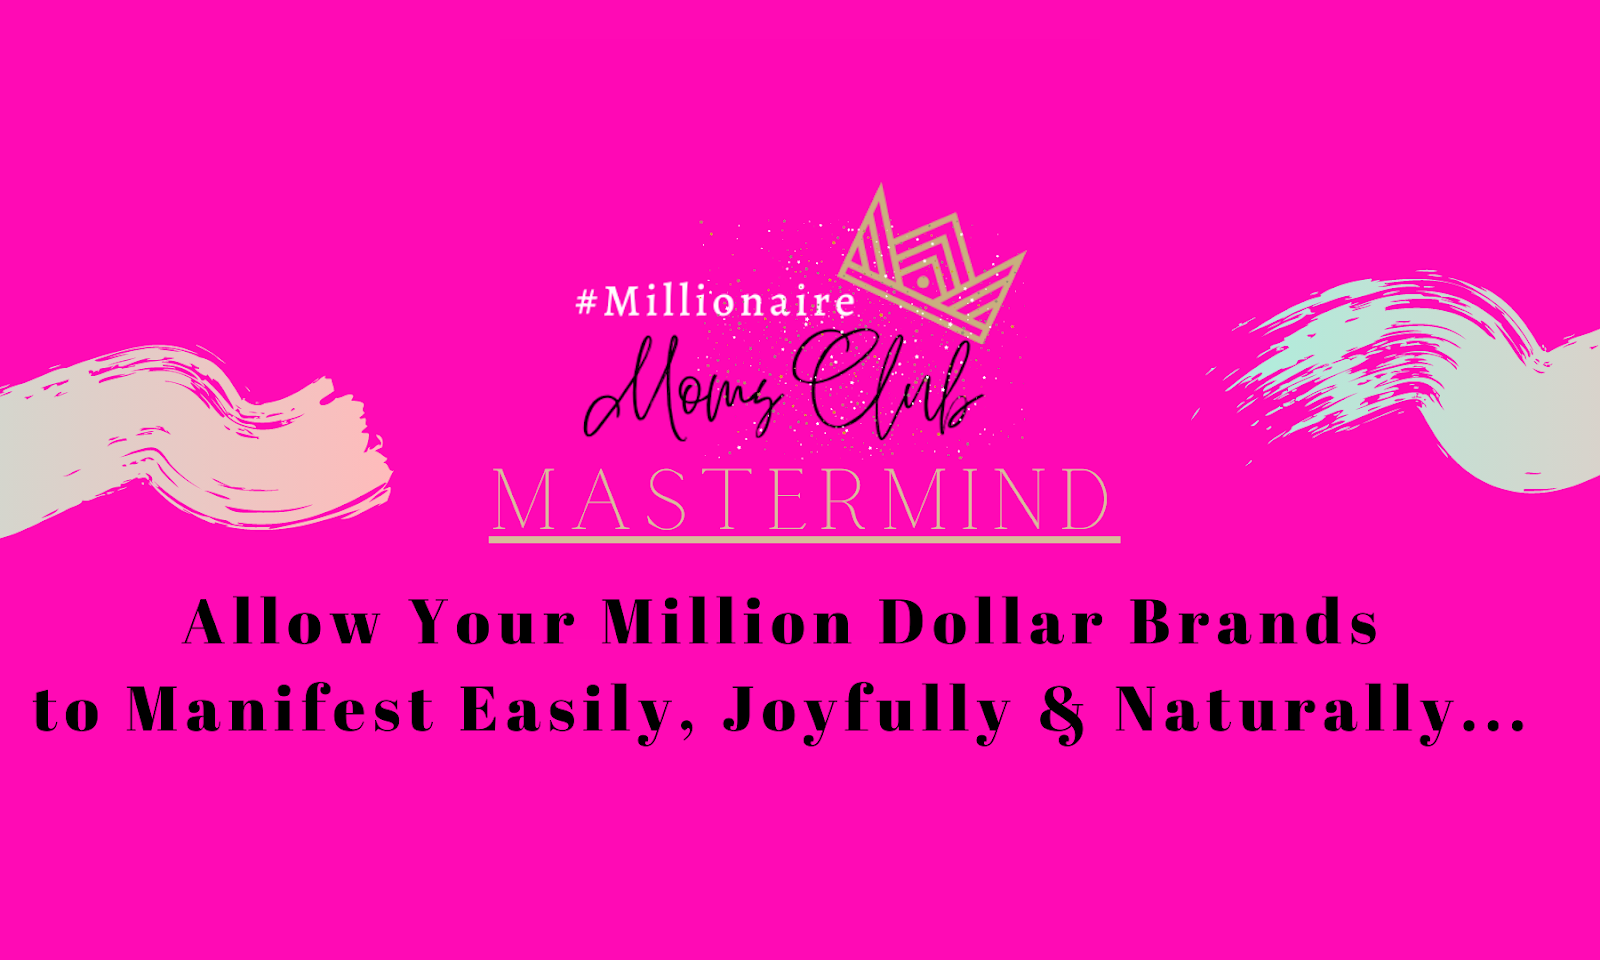 Register for Millionaire Moms Club Mastermind Meetings & Join The NEW Community!